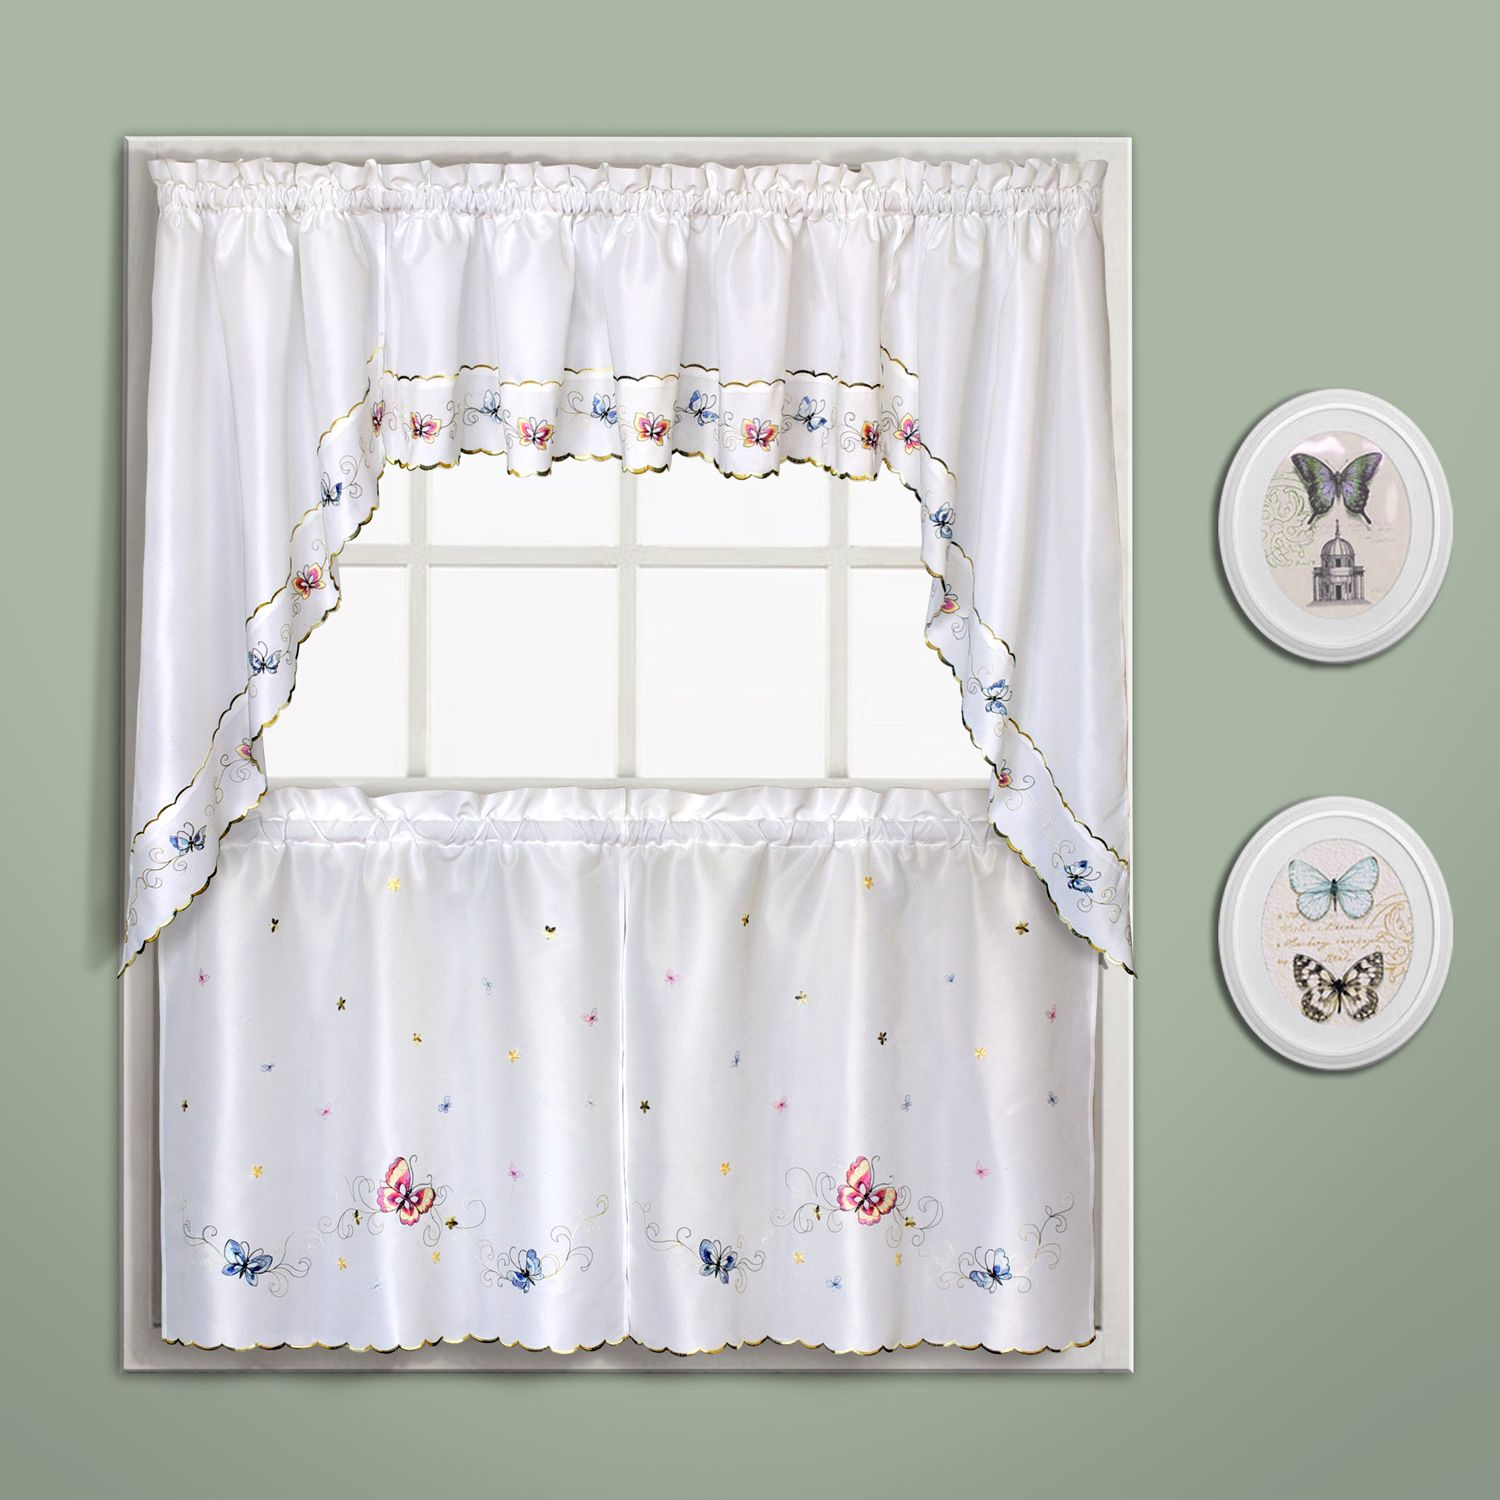 Charmant Butterfly Swag Tier Kitchen Window Curtains